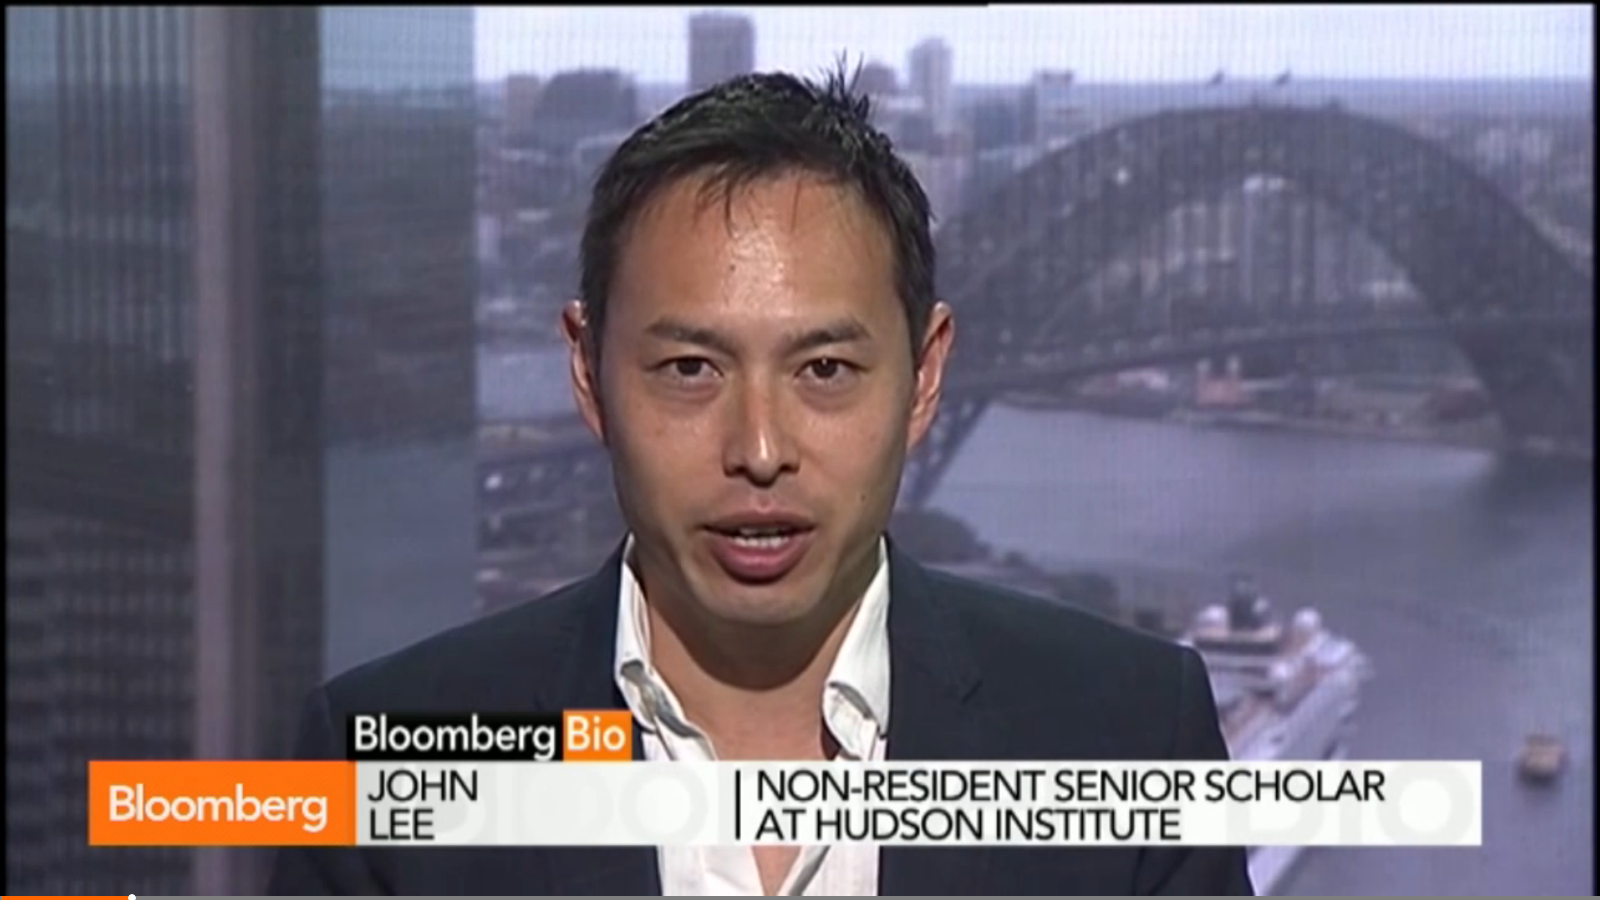 Xi Meets Abe With Awkward Handshake at APEC, Bloomberg, November 11, 2014